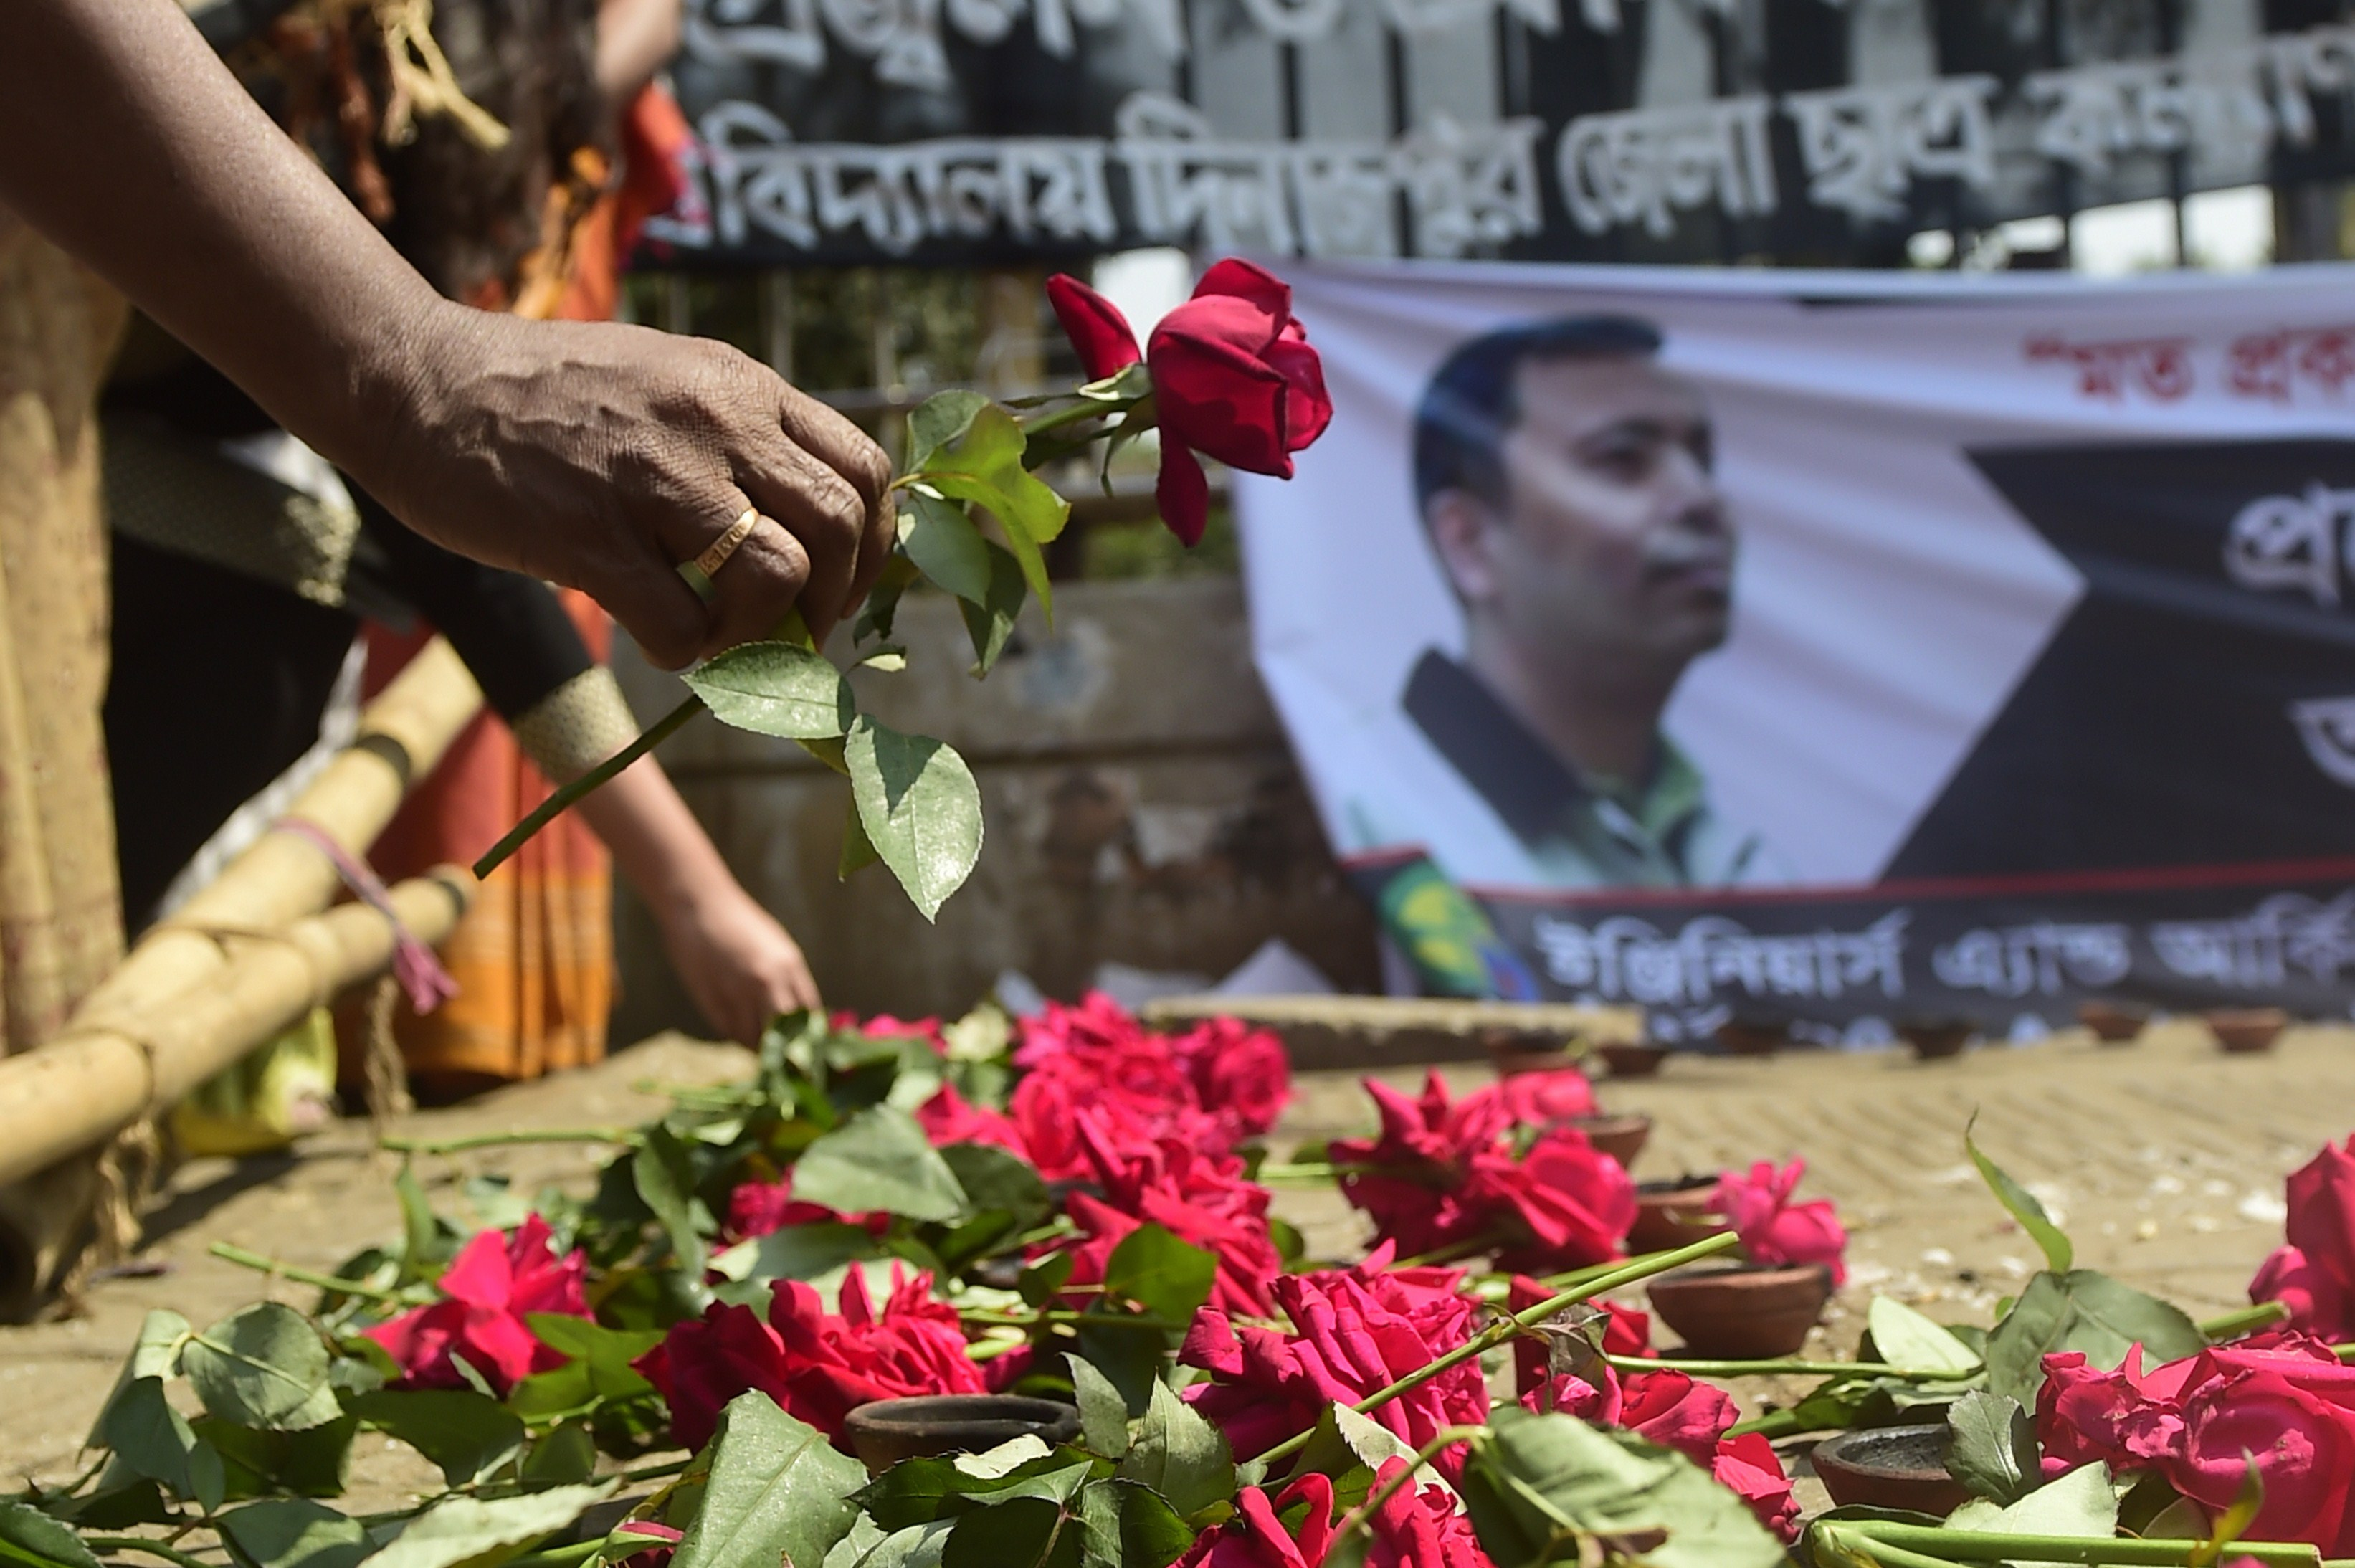 A Bangladeshi social activist pays his  last respects to slain US blogger of Bangladeshi origin and founder of the Mukto-Mona (Free-mind) blog site, Avijit Roy in Dhaka on March 6, 2015 after he was hacked to death by unidentified assailants in the Bangladeshi capital on February 26.